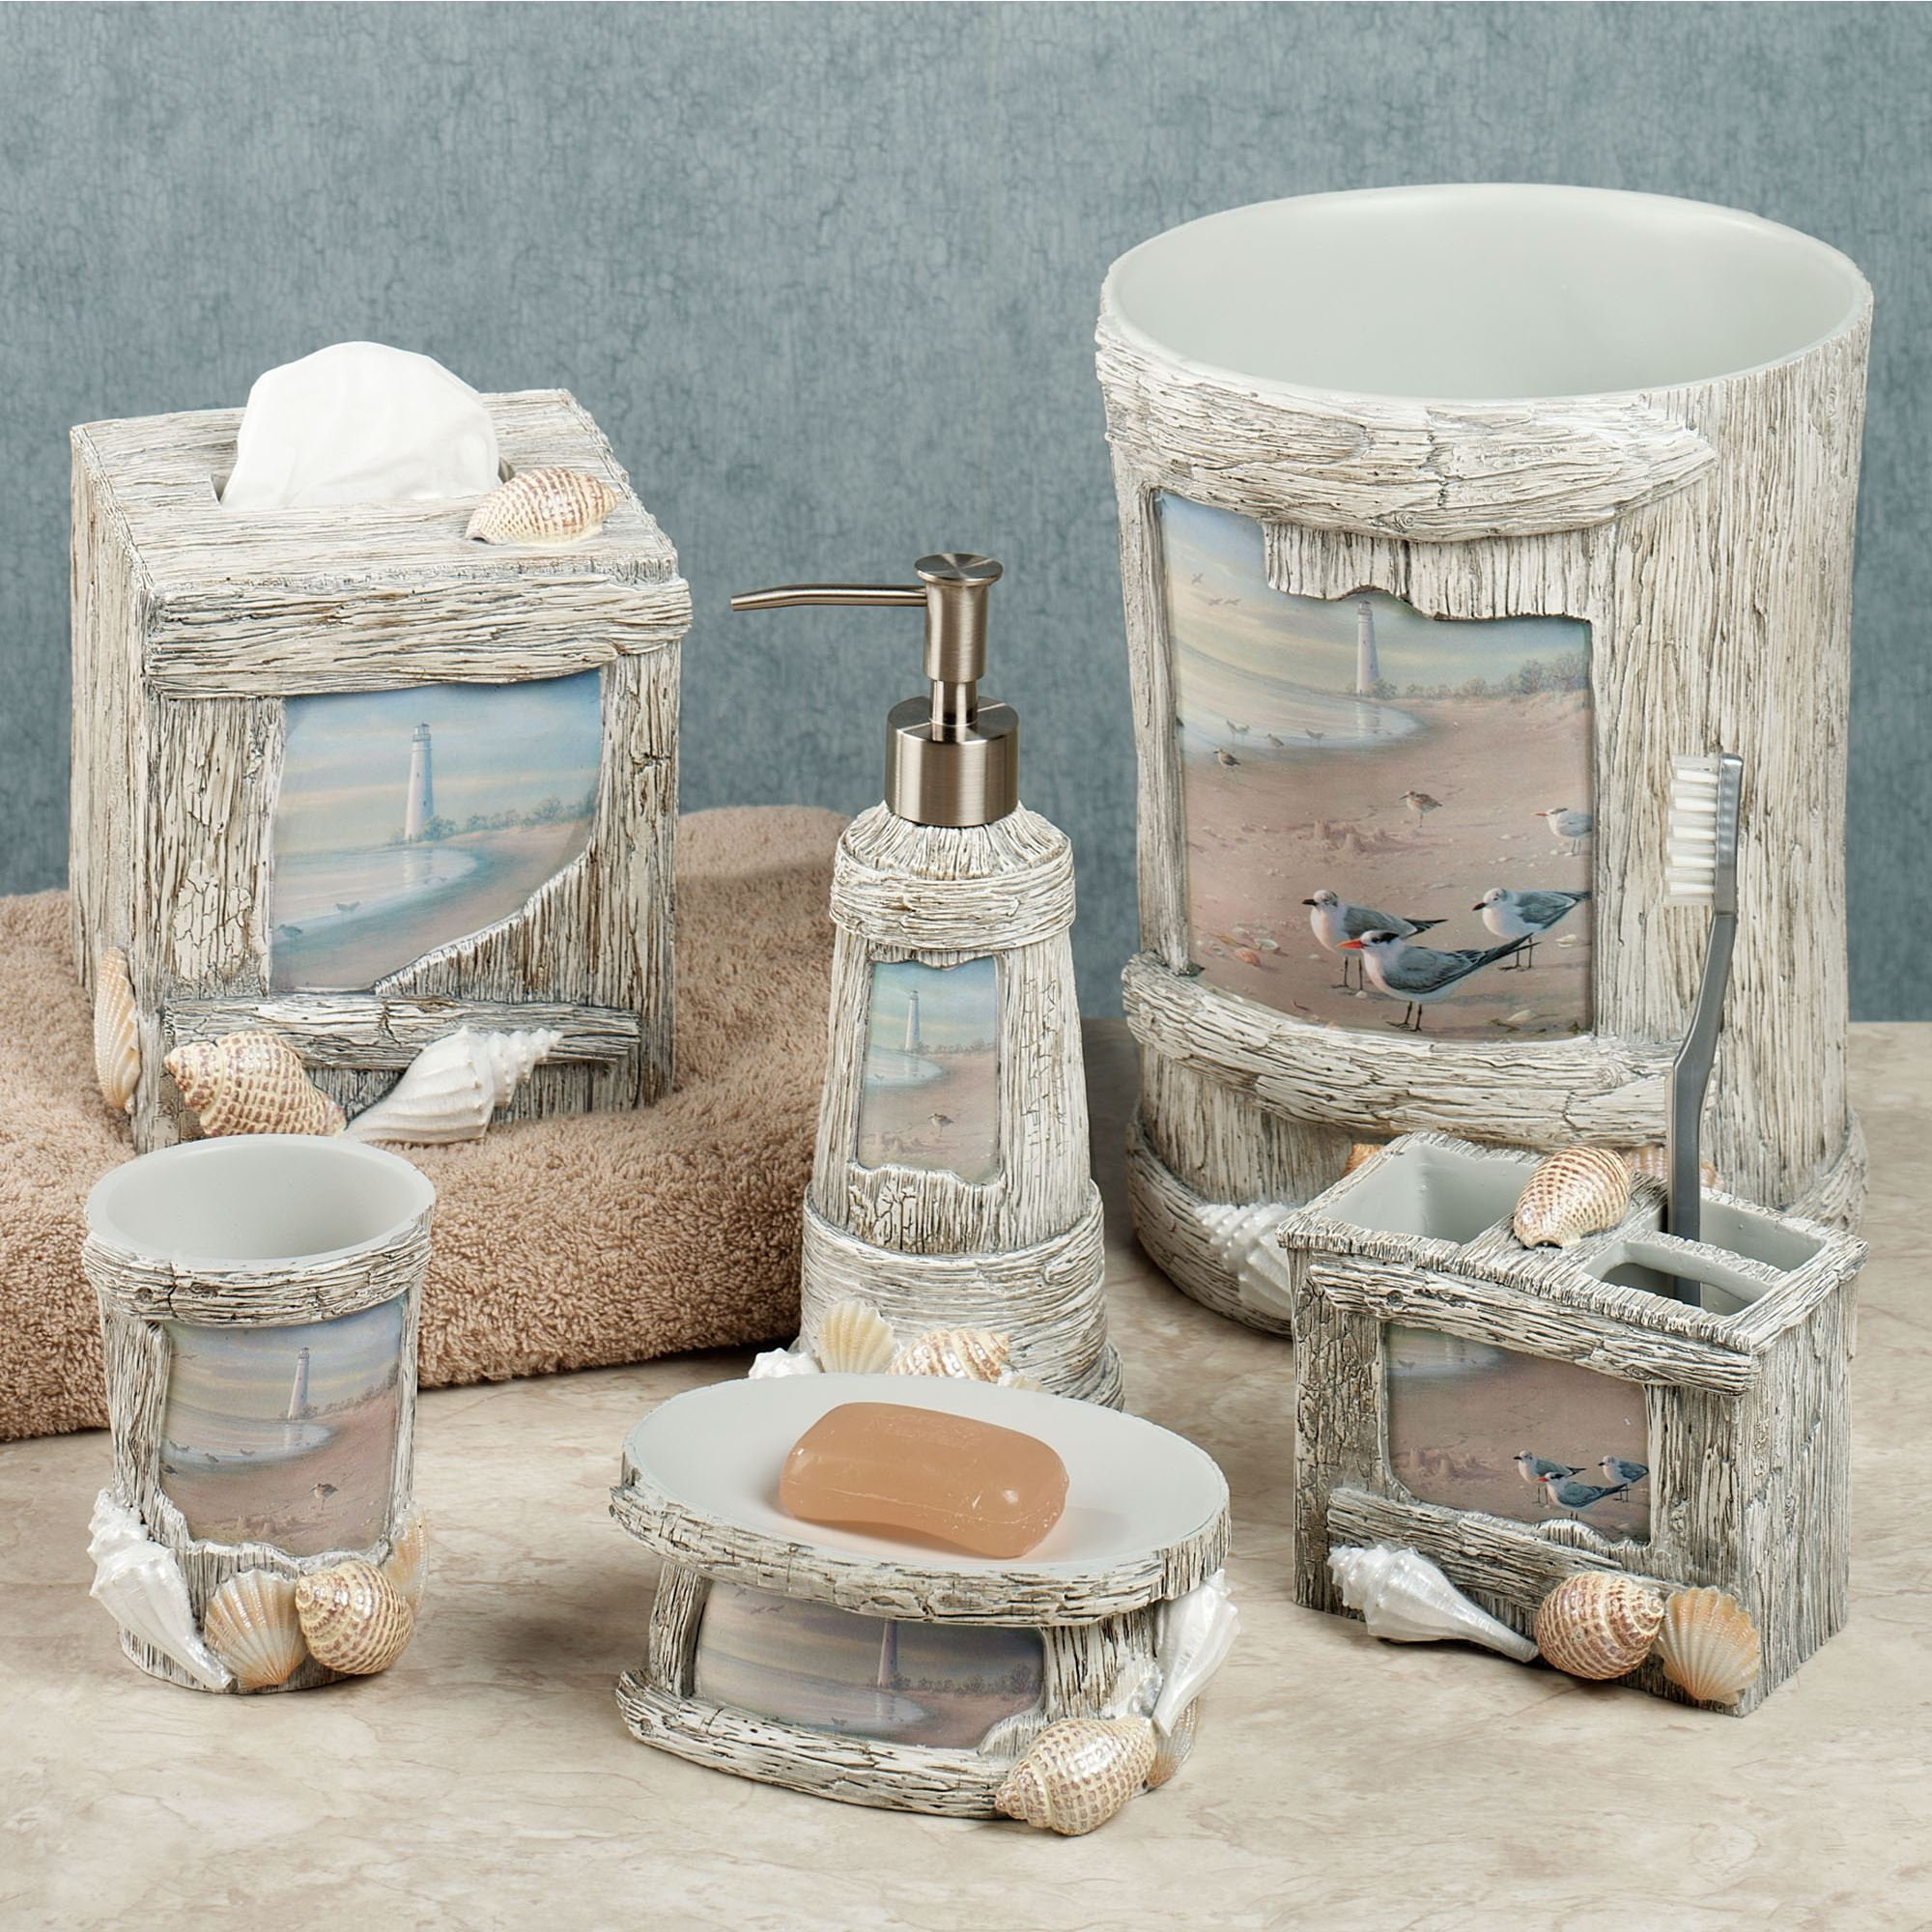 At the beach bath accessories for Bathroom decoration items